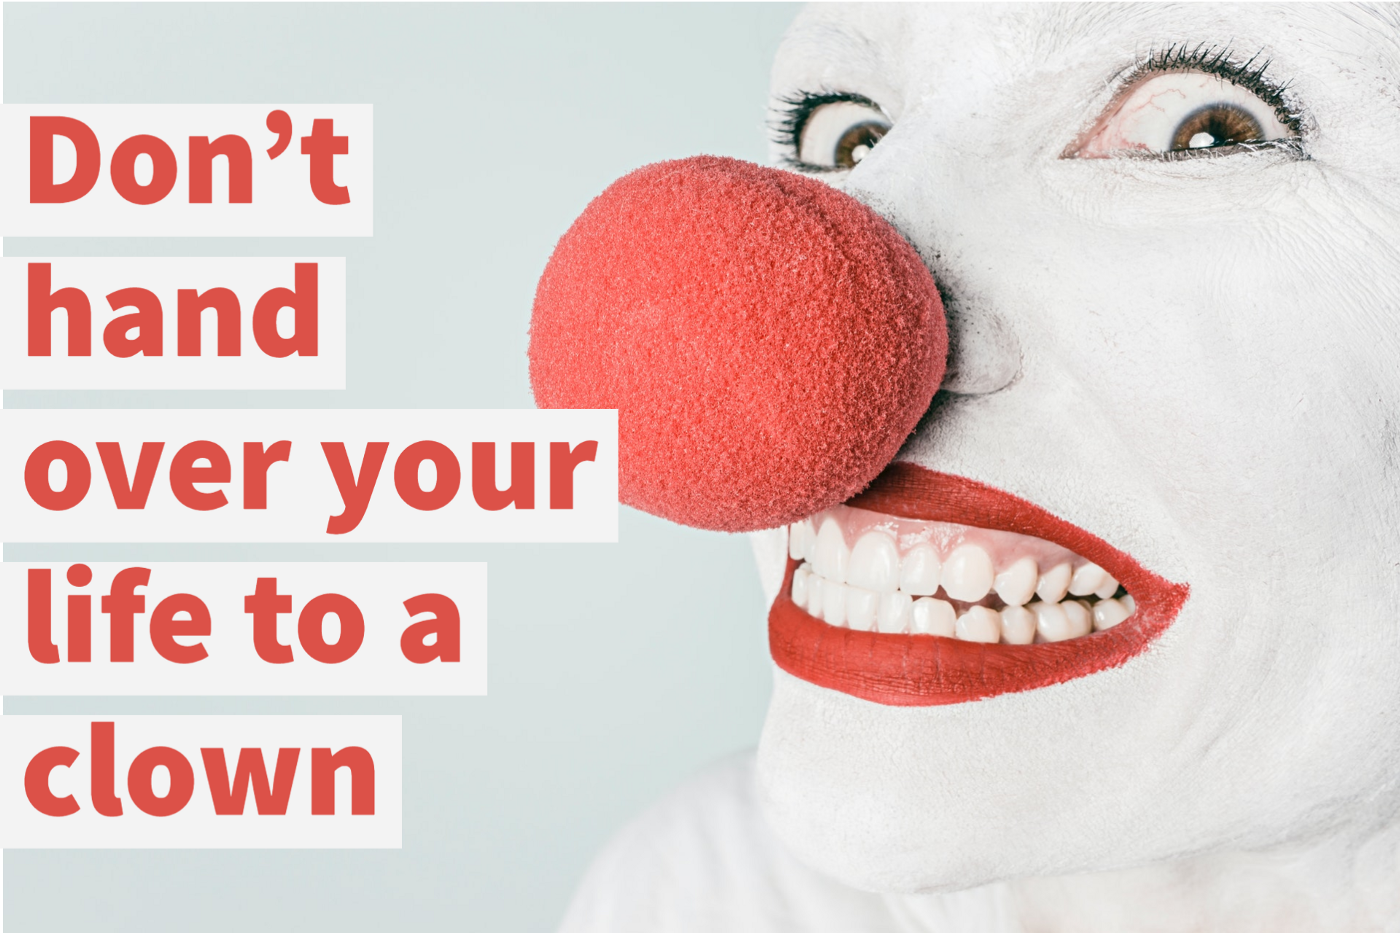 A clown's face with the text: Don't hand over your life to a clown